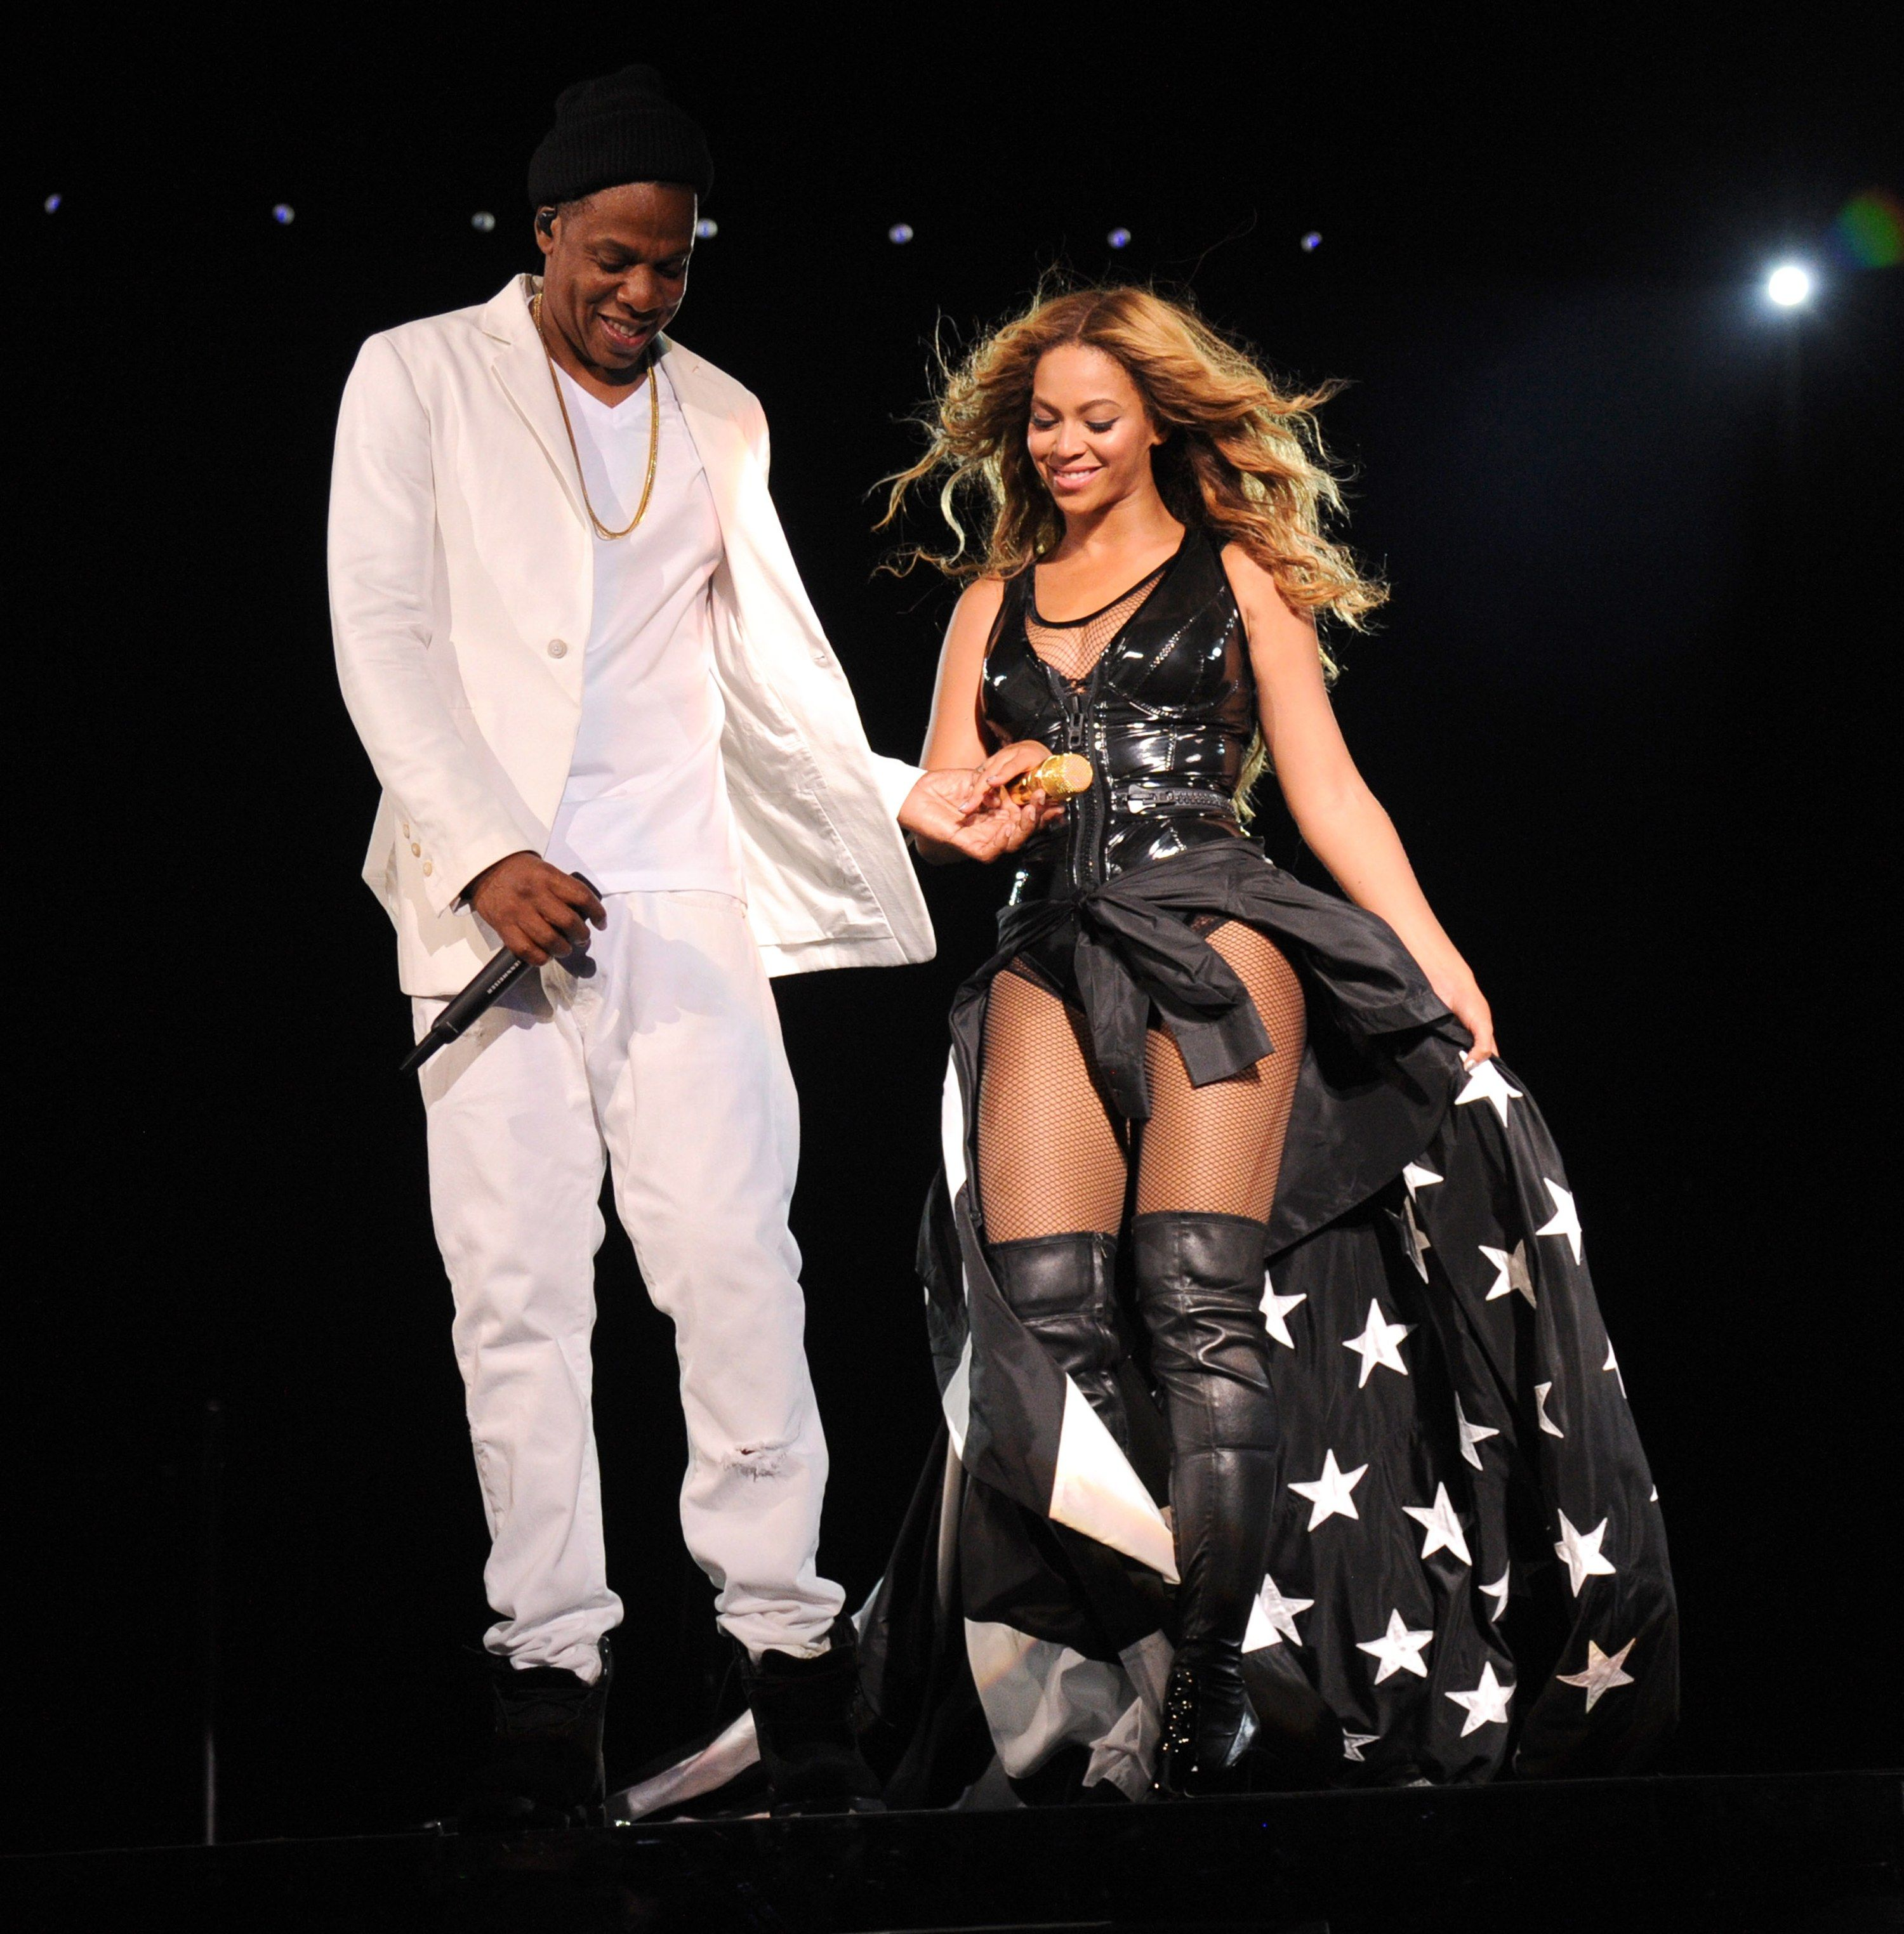 Even if Beyoncé and JayZ Don't Got on Tour, Their Onstage